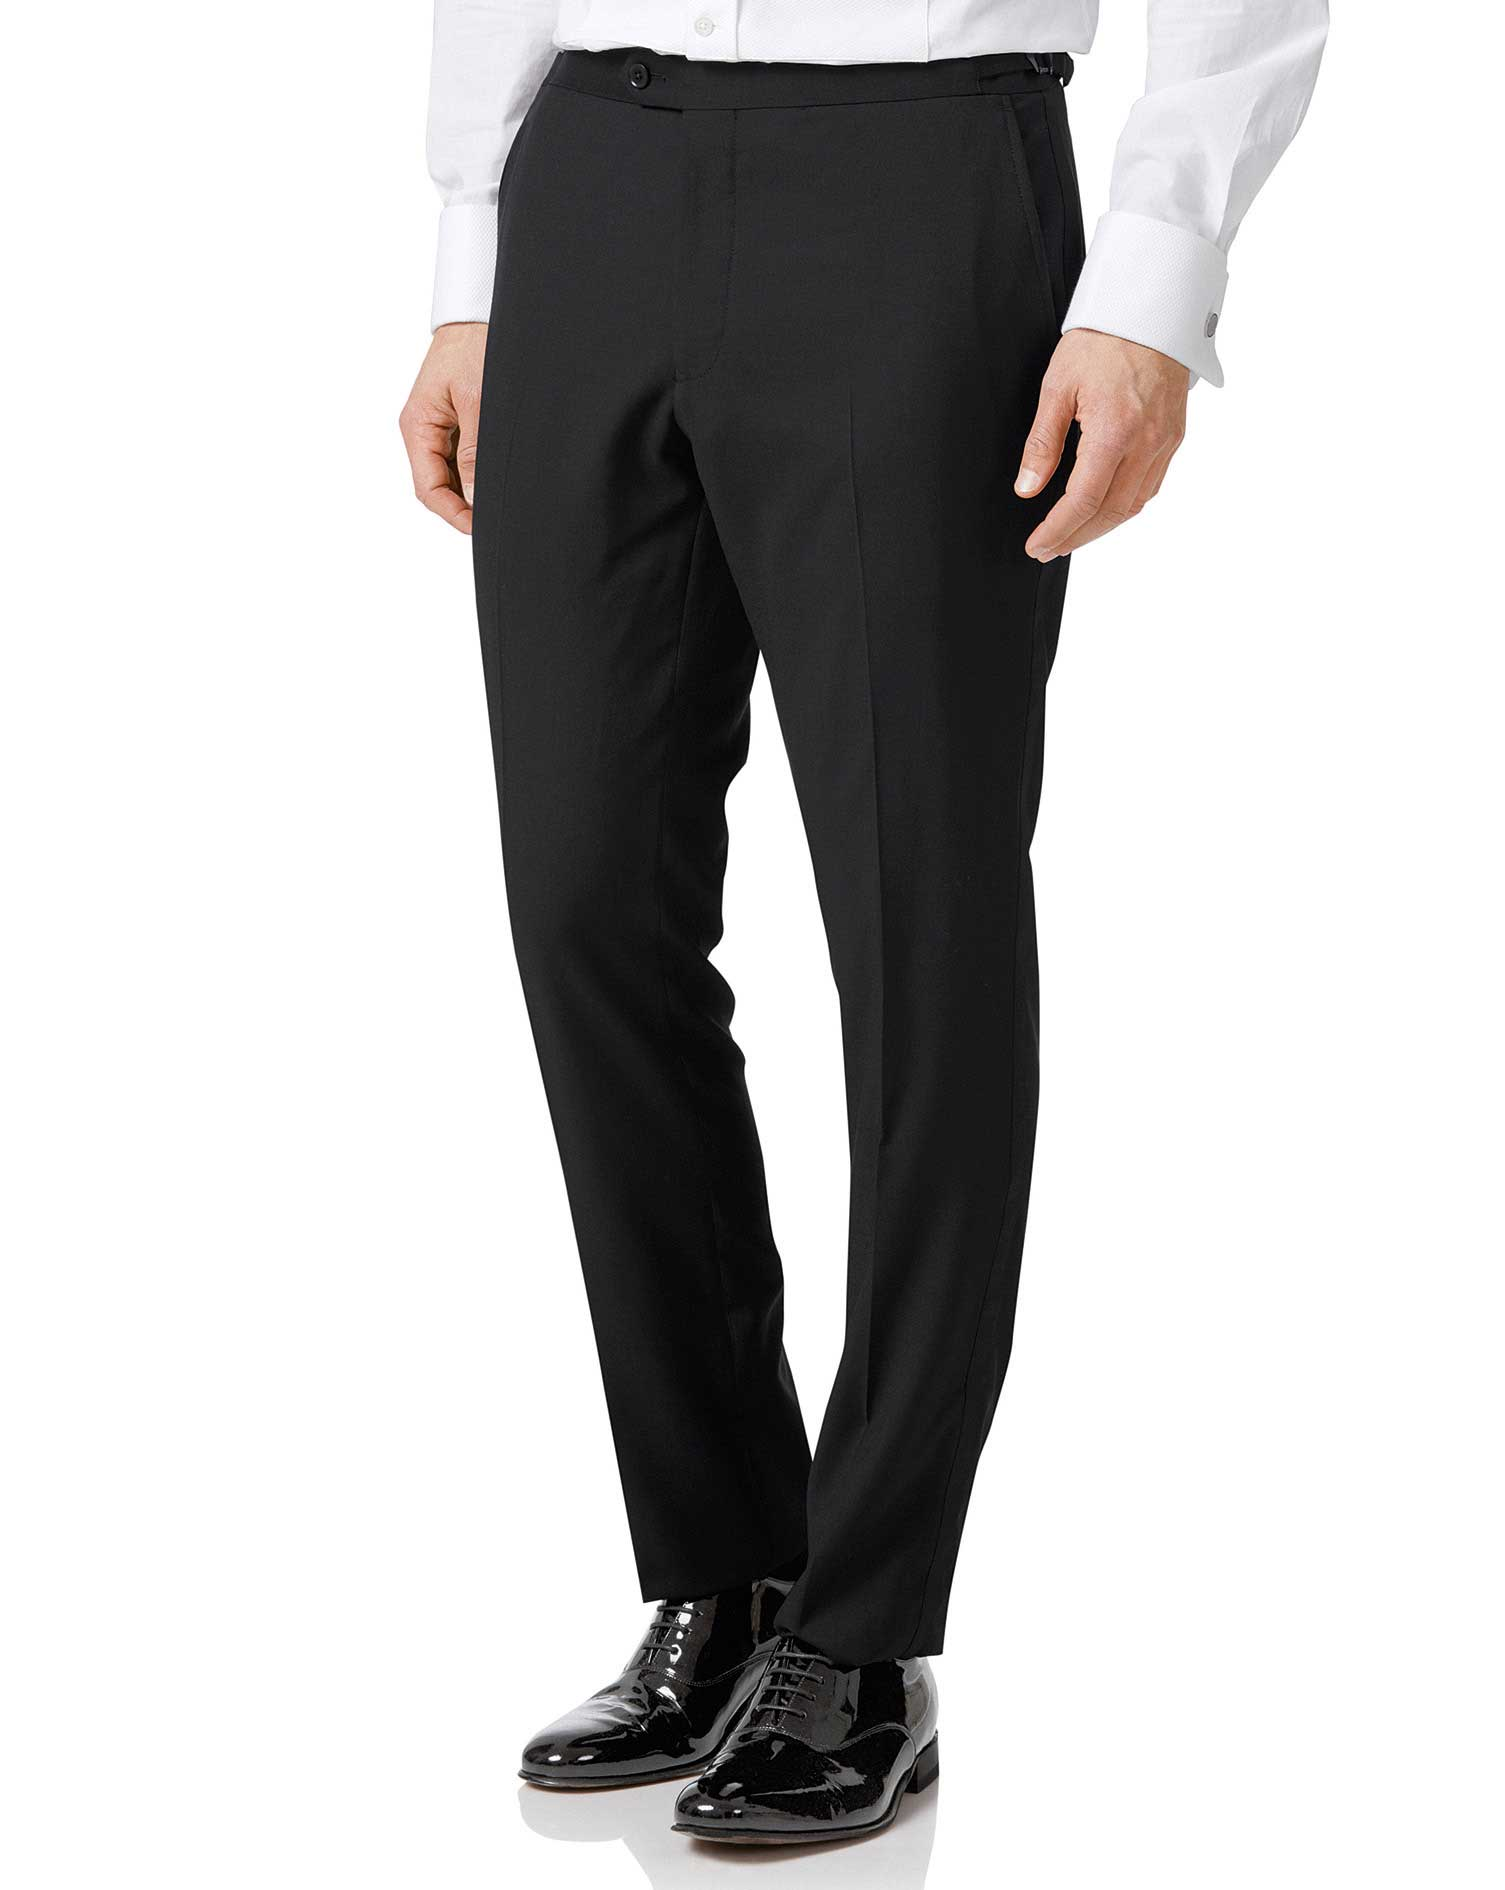 Black Extra Slim Fit Dinner Suit Trouser Size W34 L34 by Charles Tyrwhitt